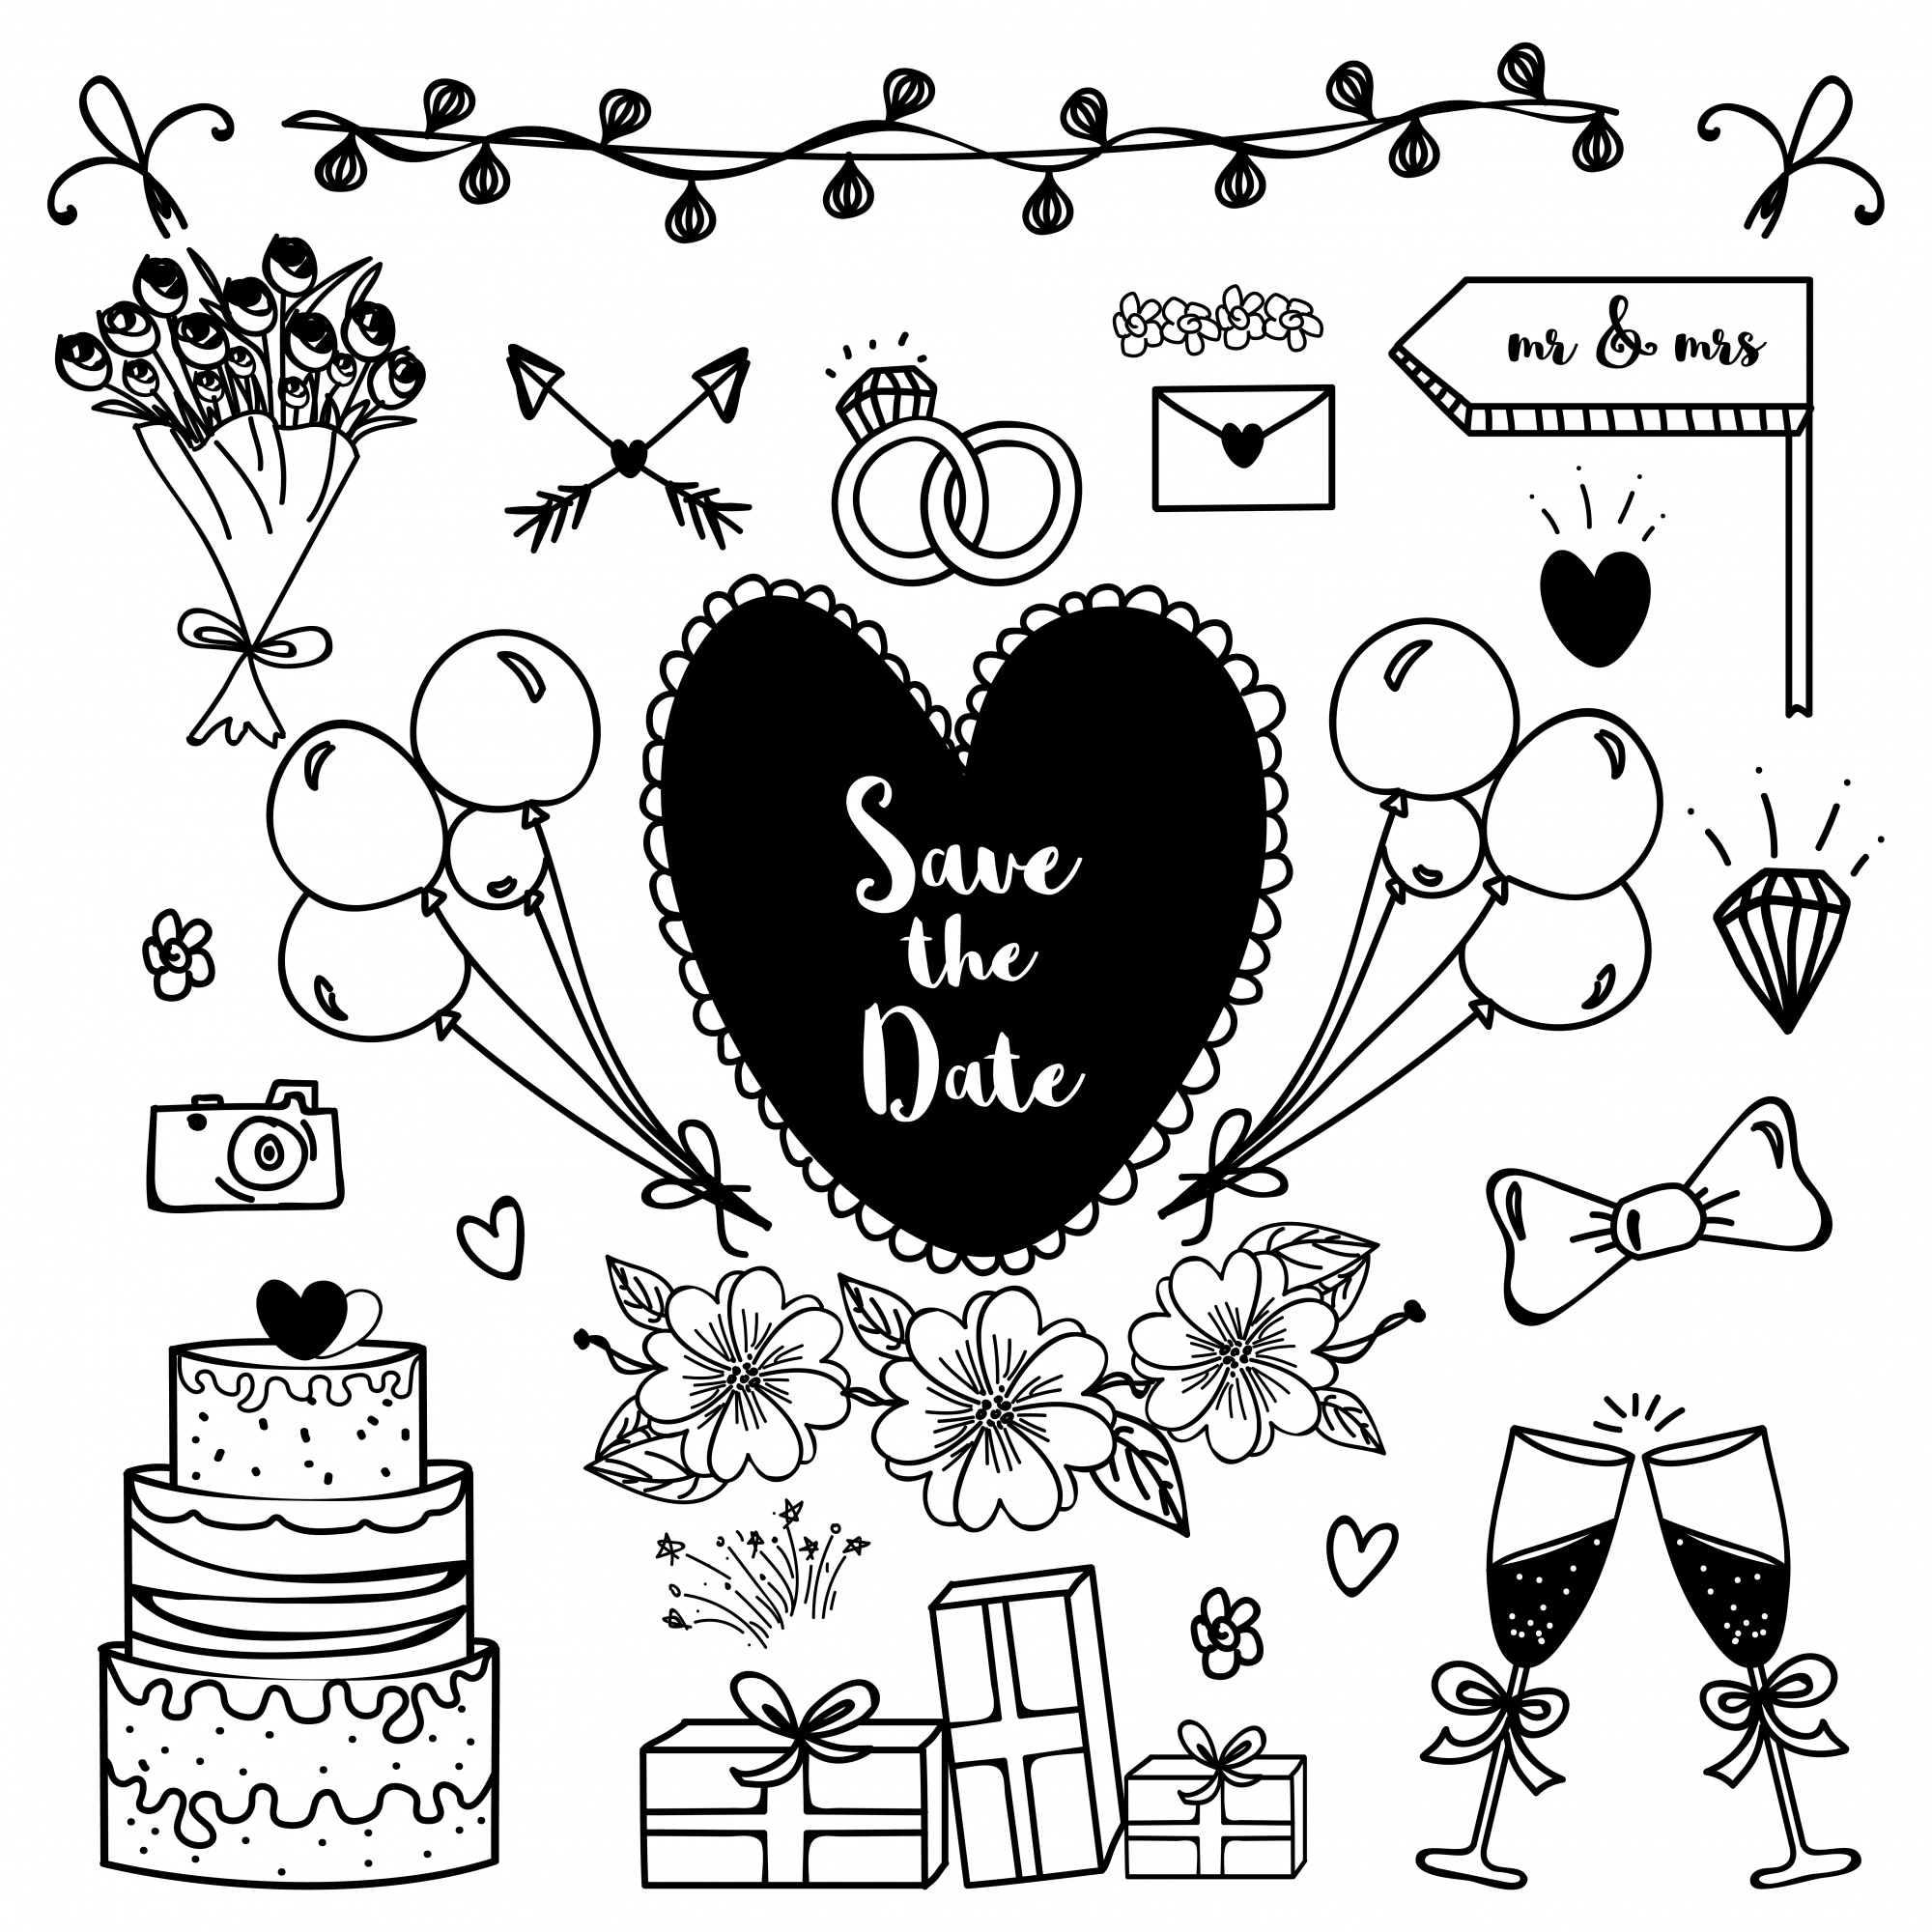 Save the Date, Wedding hand drawn doodle elements.